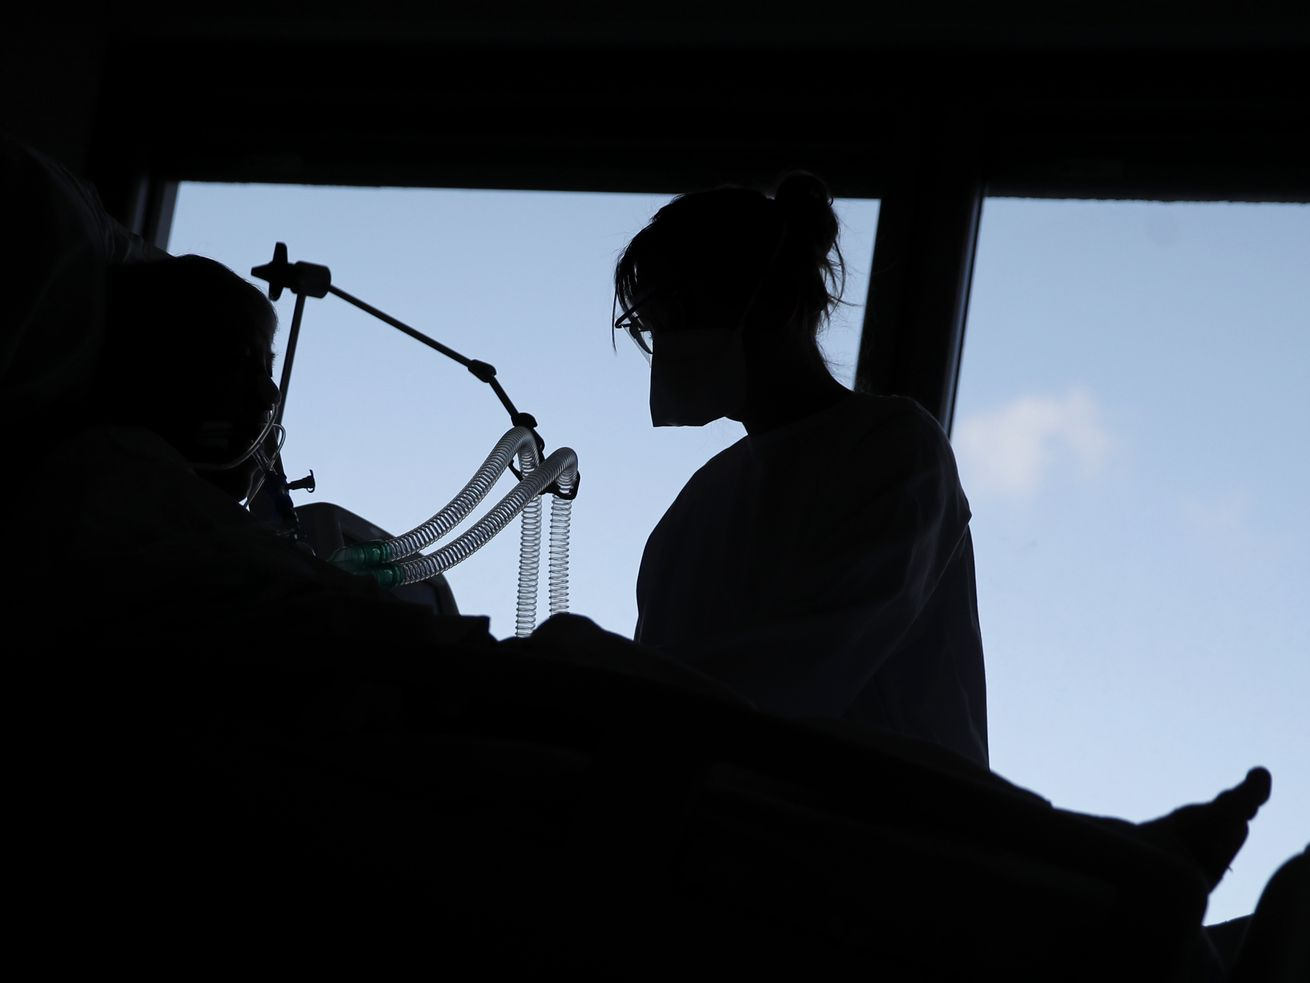 A nurse tends to a patient affected by the COVID-19 virus in the ICU unit at the Charles Nicolle public hospital, Thursday, April 15, 2021 in Rouen, France.